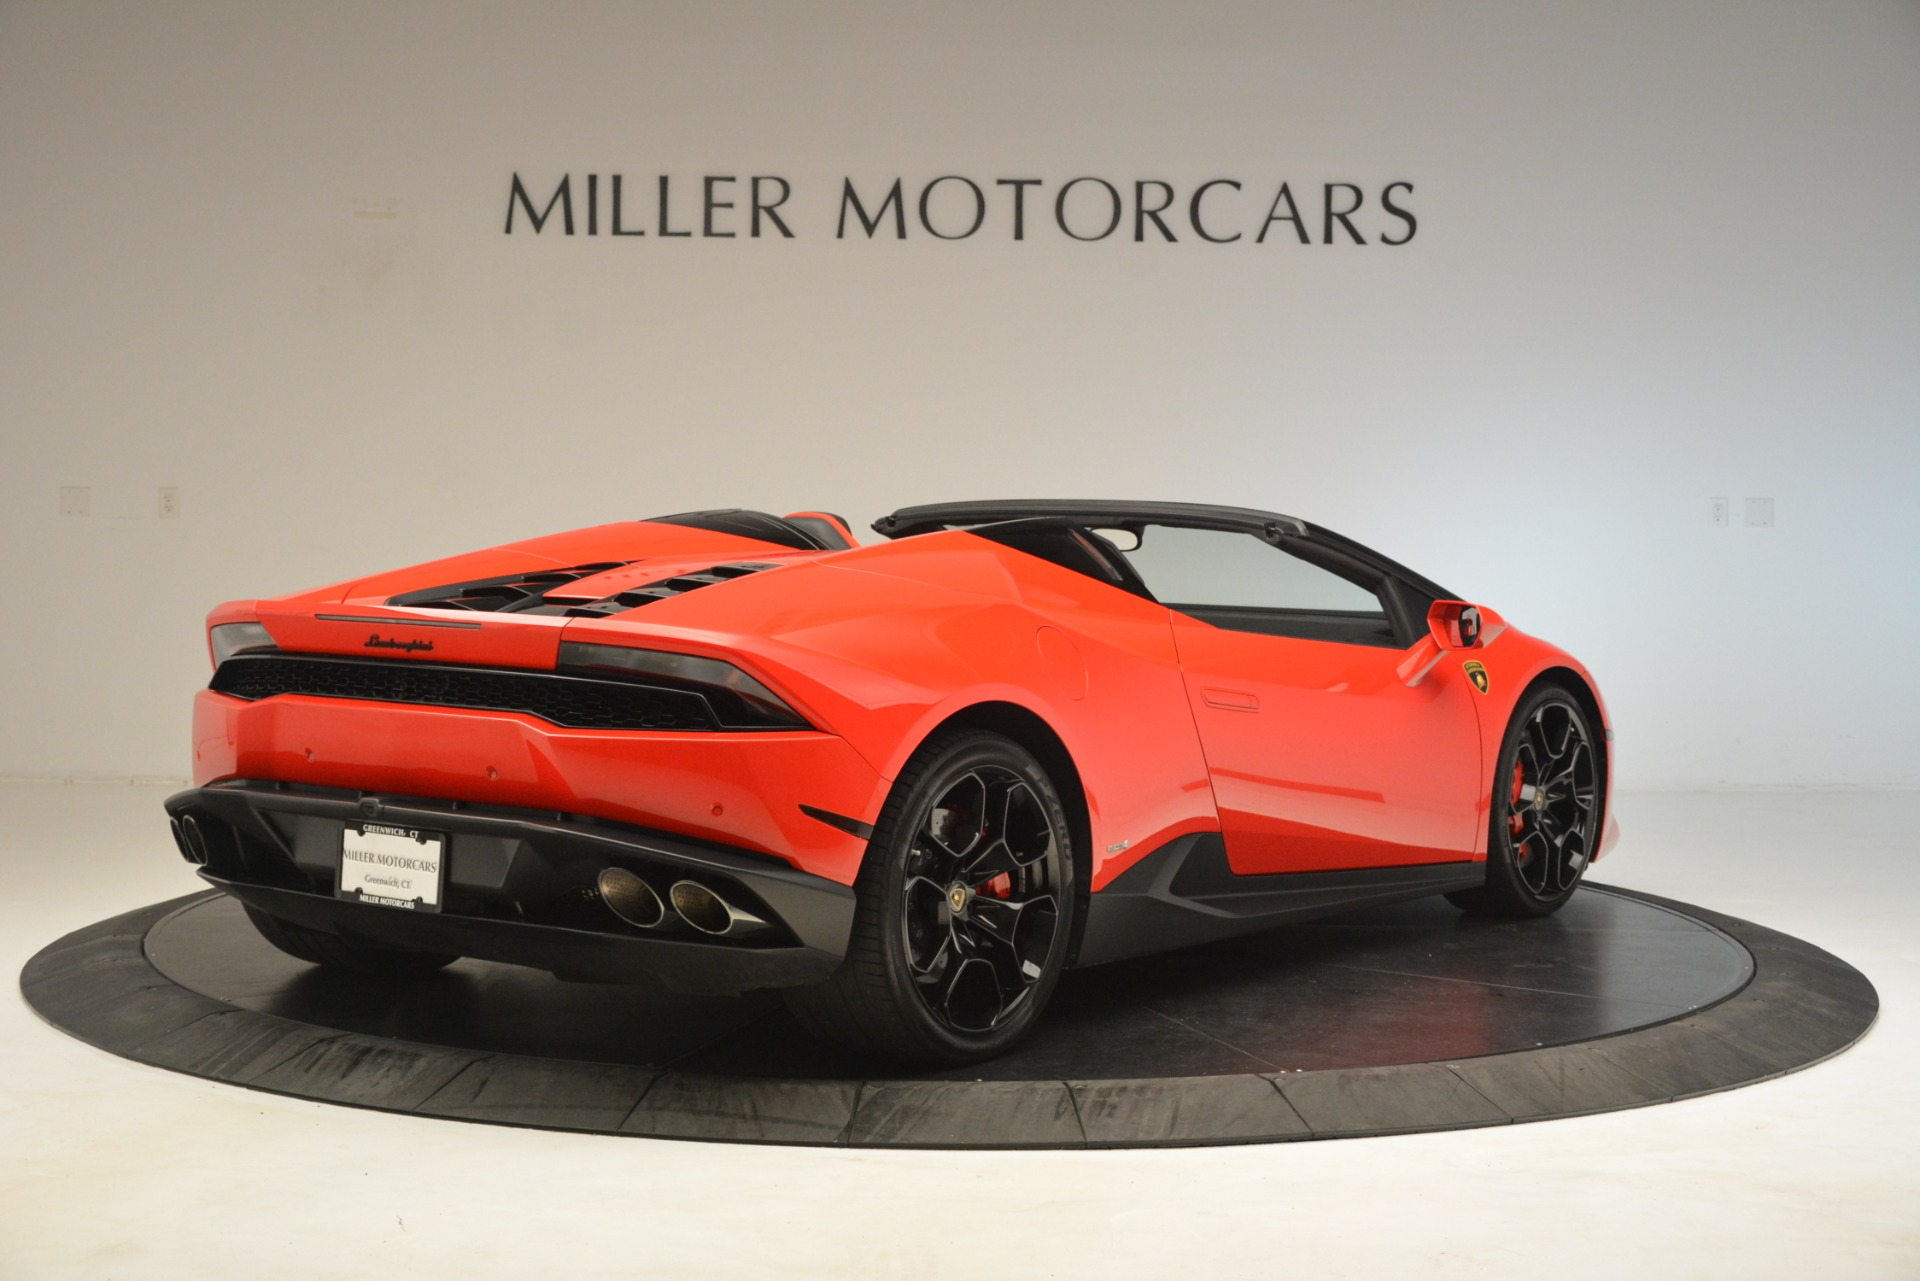 Used 2017 Lamborghini Huracan LP 610-4 Spyder For Sale In Greenwich, CT. Alfa Romeo of Greenwich, 7597 3270_p5